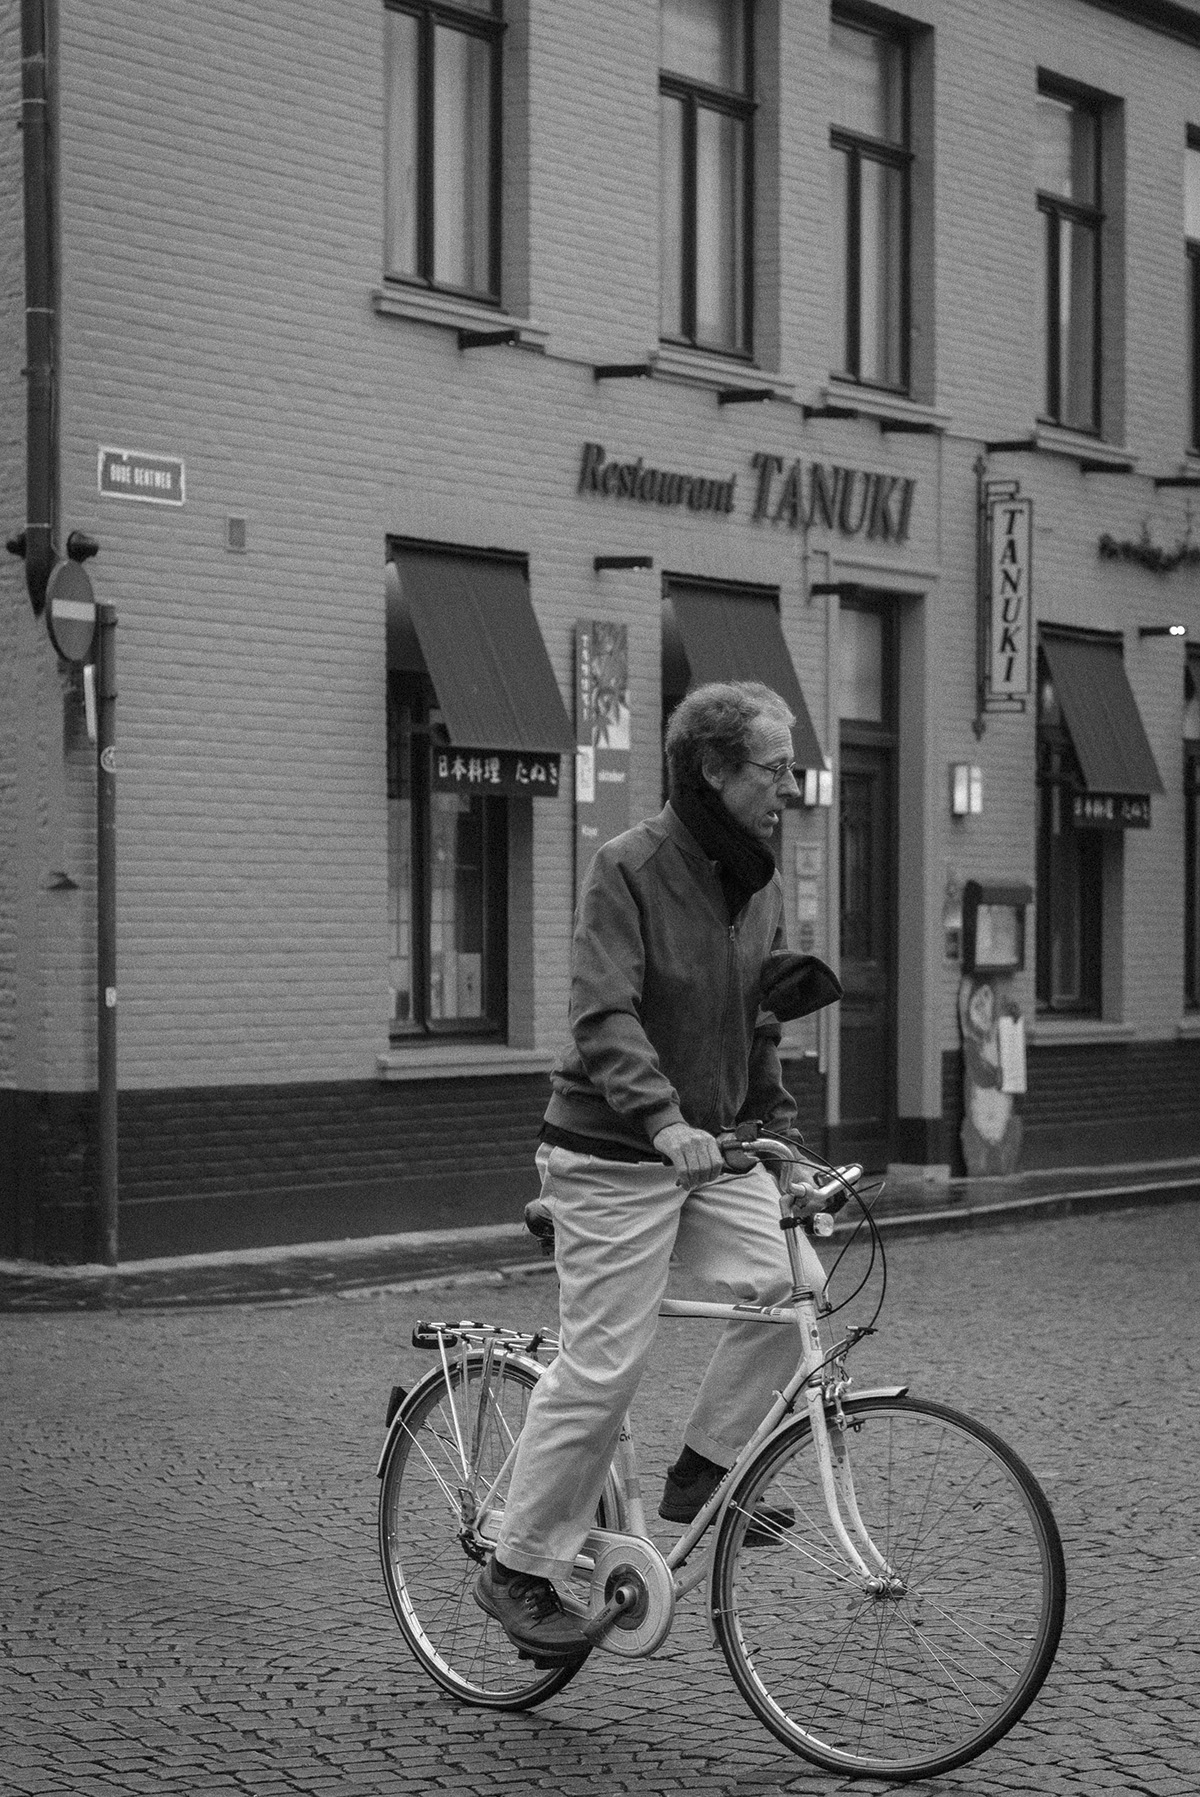 man on bicycle - Bruges - black and white photograph - Patricia Martins Yellowish blog